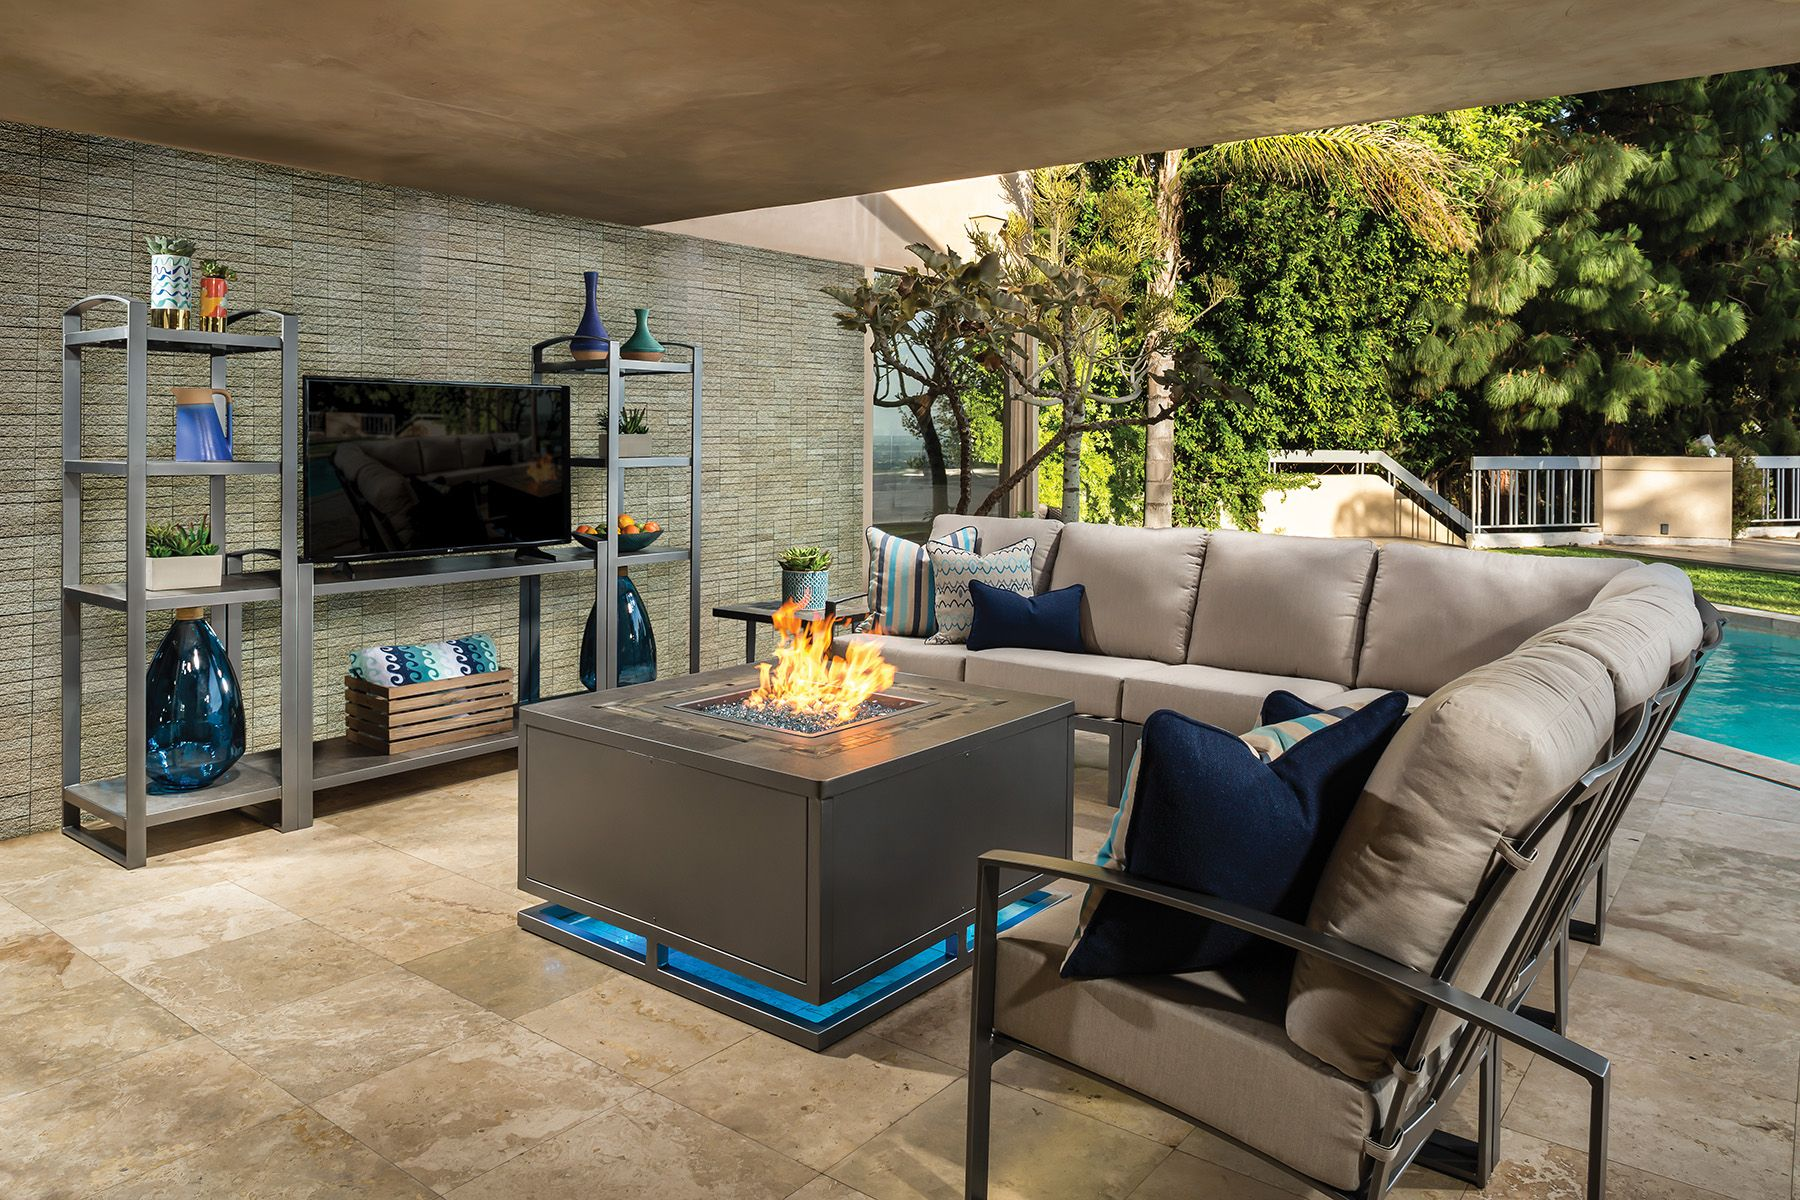 must see at lvmkt july 30 aug 3 ow lee s zen chat height fire